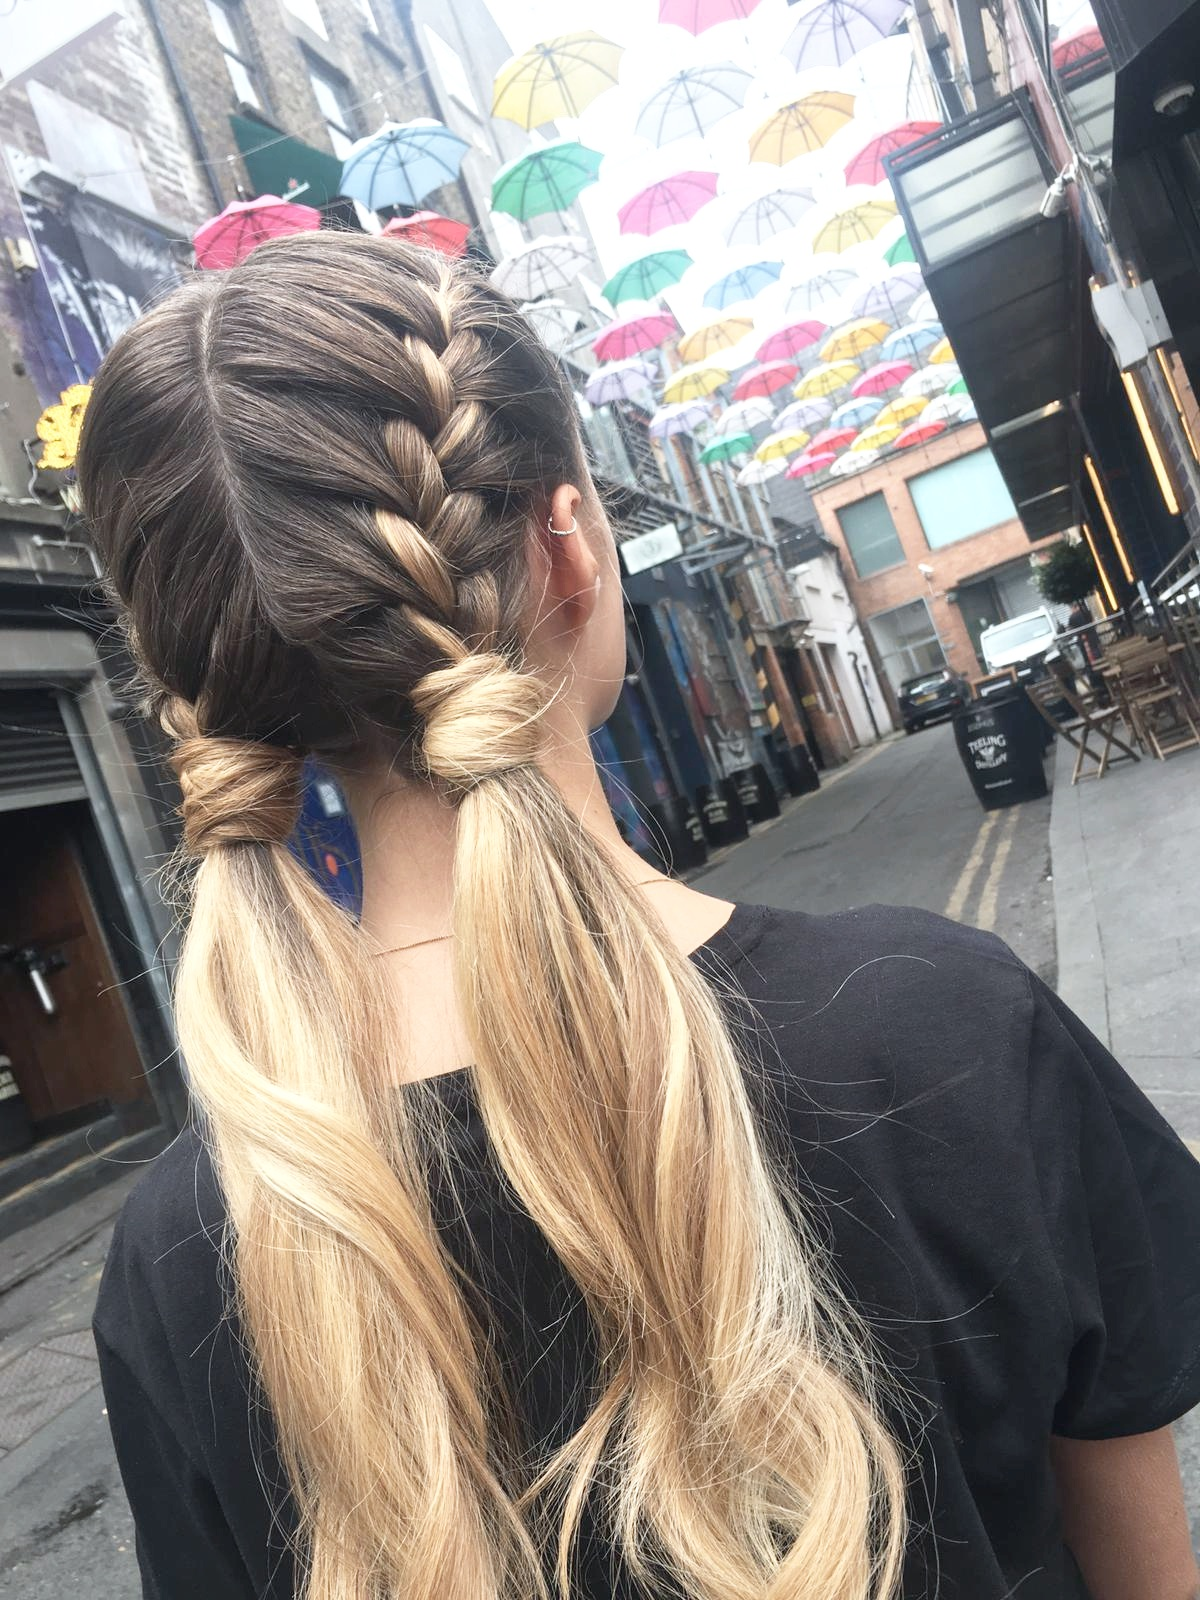 Double braid with pigtails.